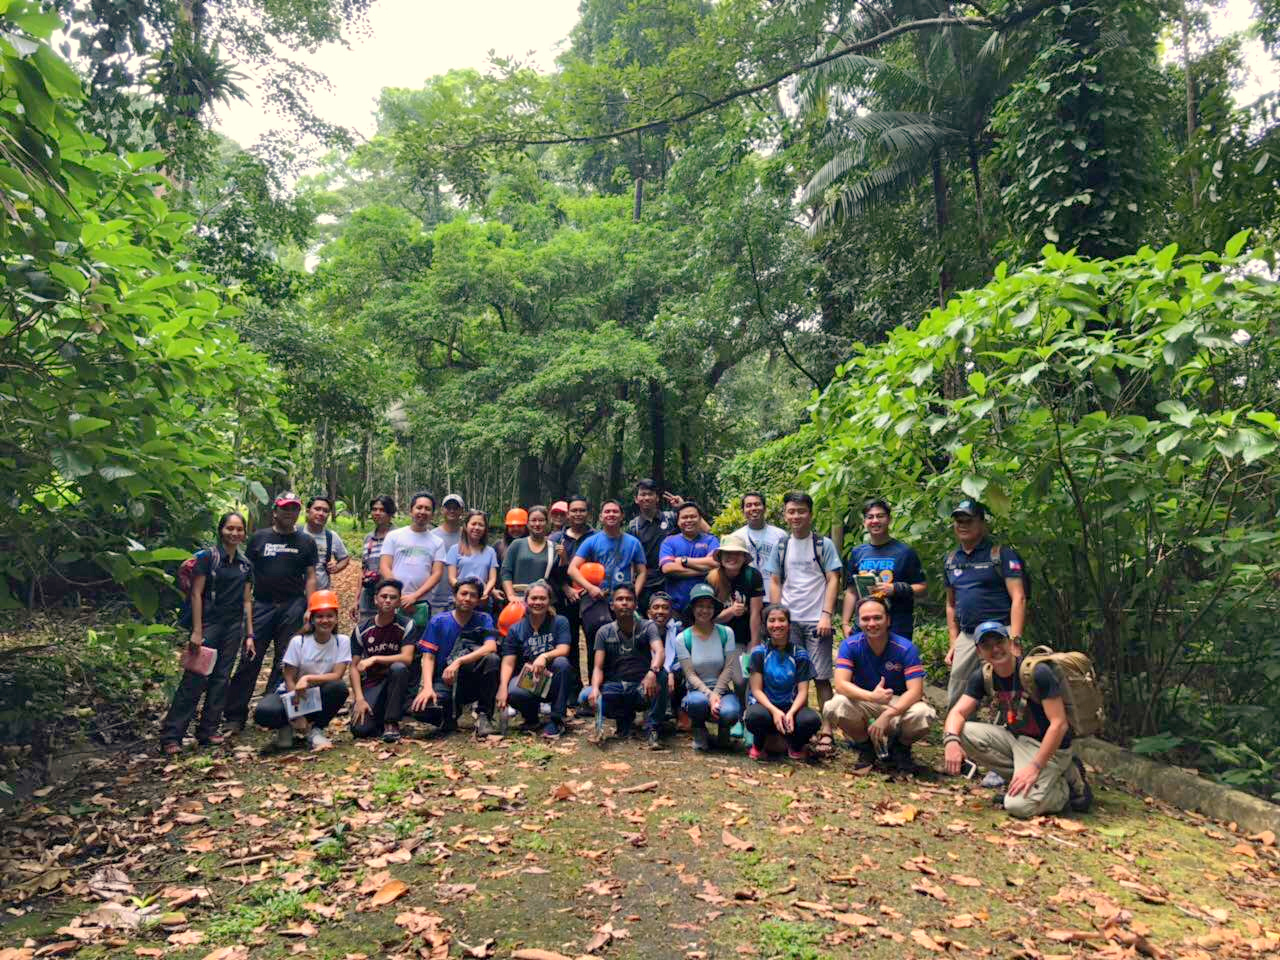 The EDC BINHI Tree Encounter and Knowledge Sharing participants pose for a photo during the hike